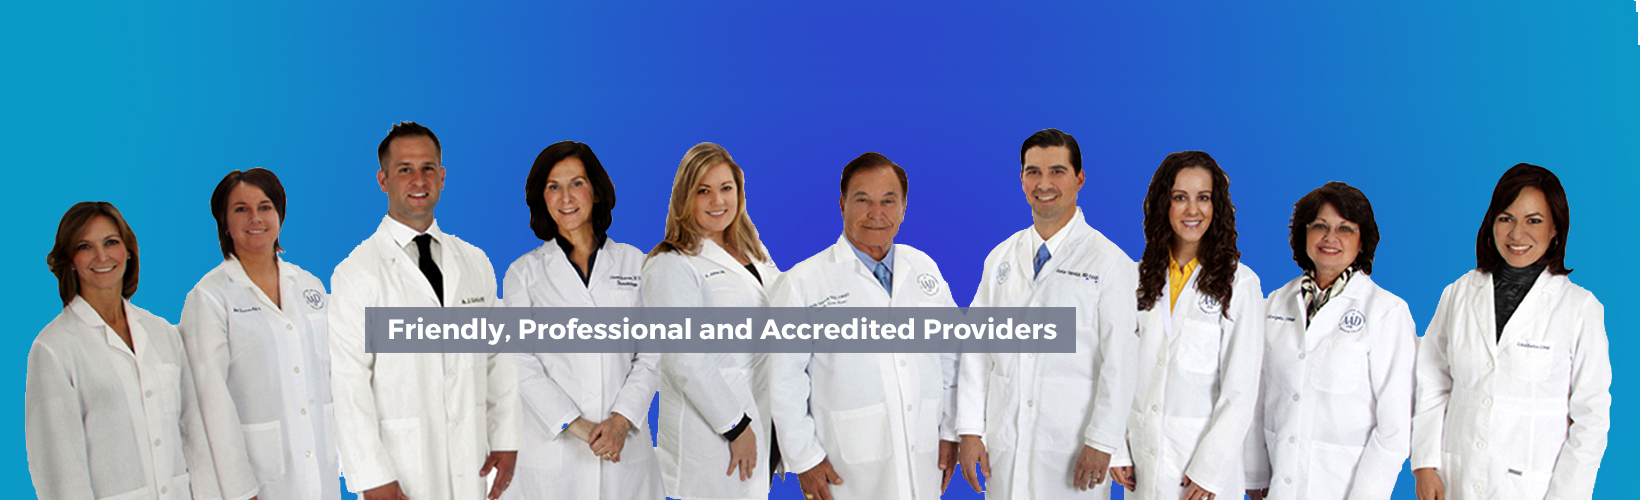 Friendly, Professional and Accredited Providers